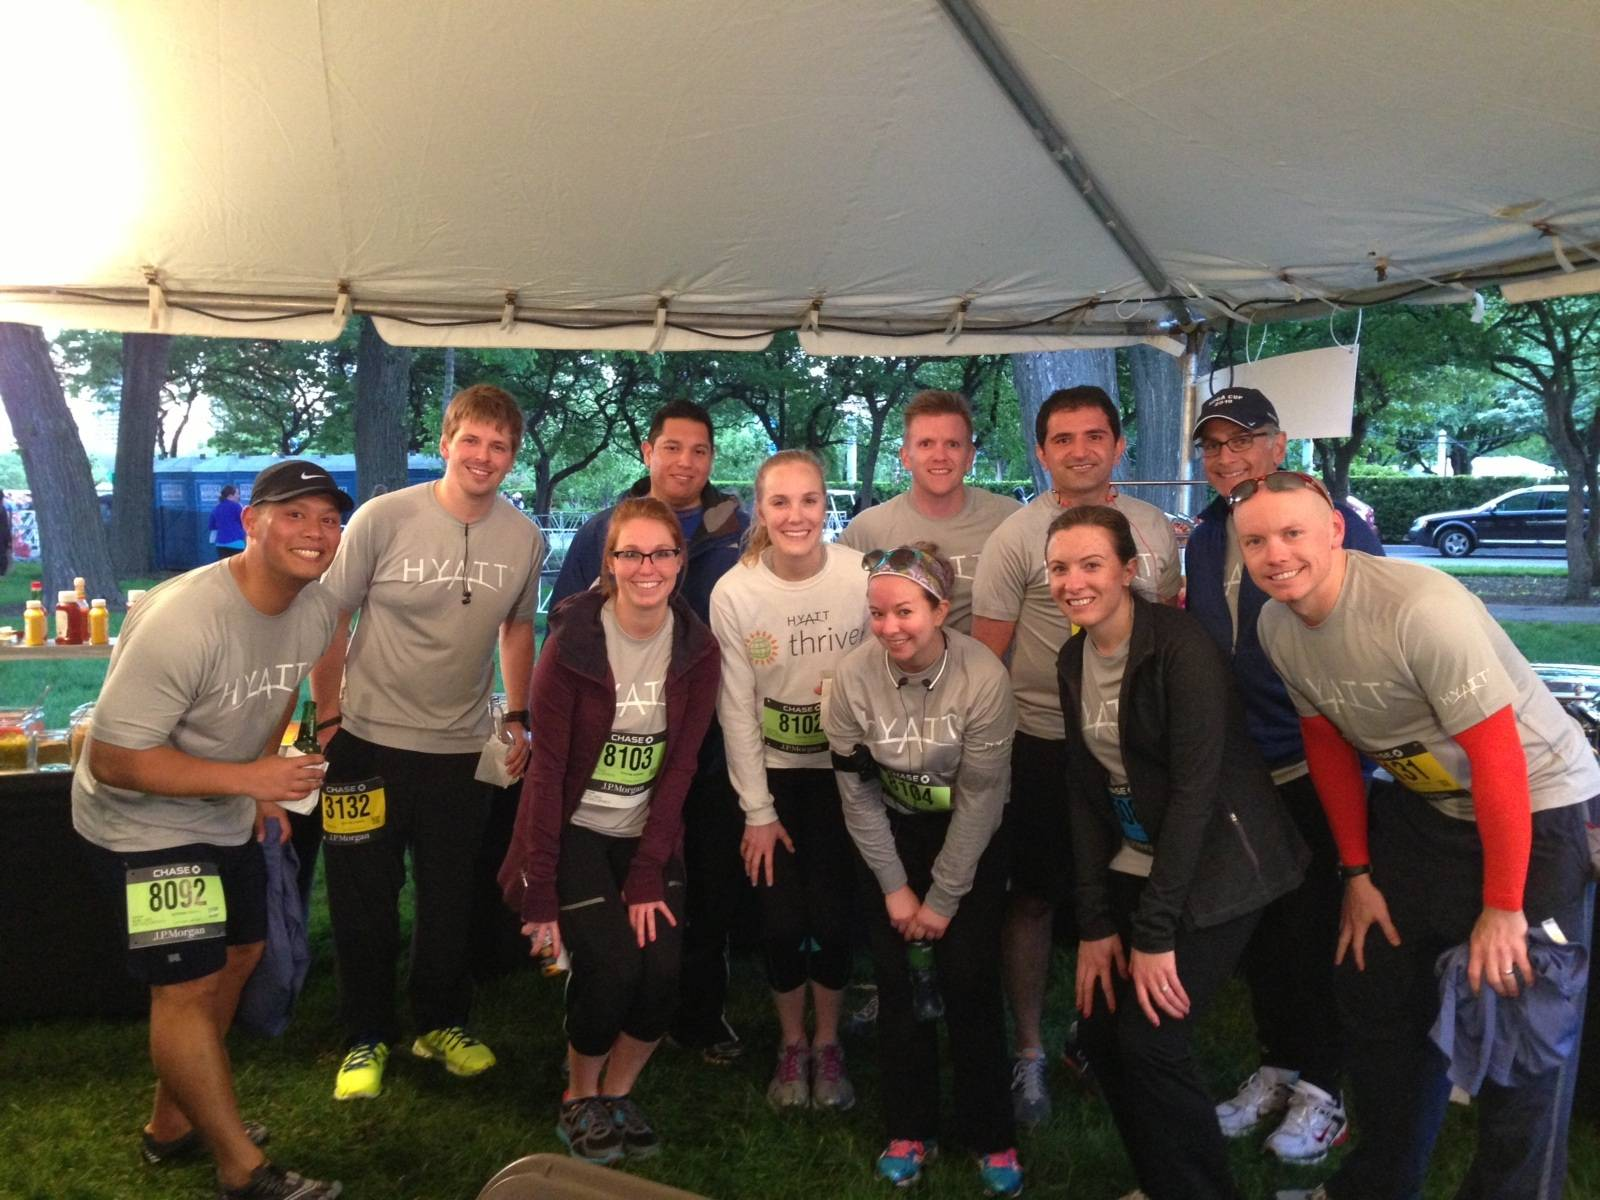 Hyatt team members enjoy the 2013 J.P. Morgan Corporate Challenge in Grant Park.